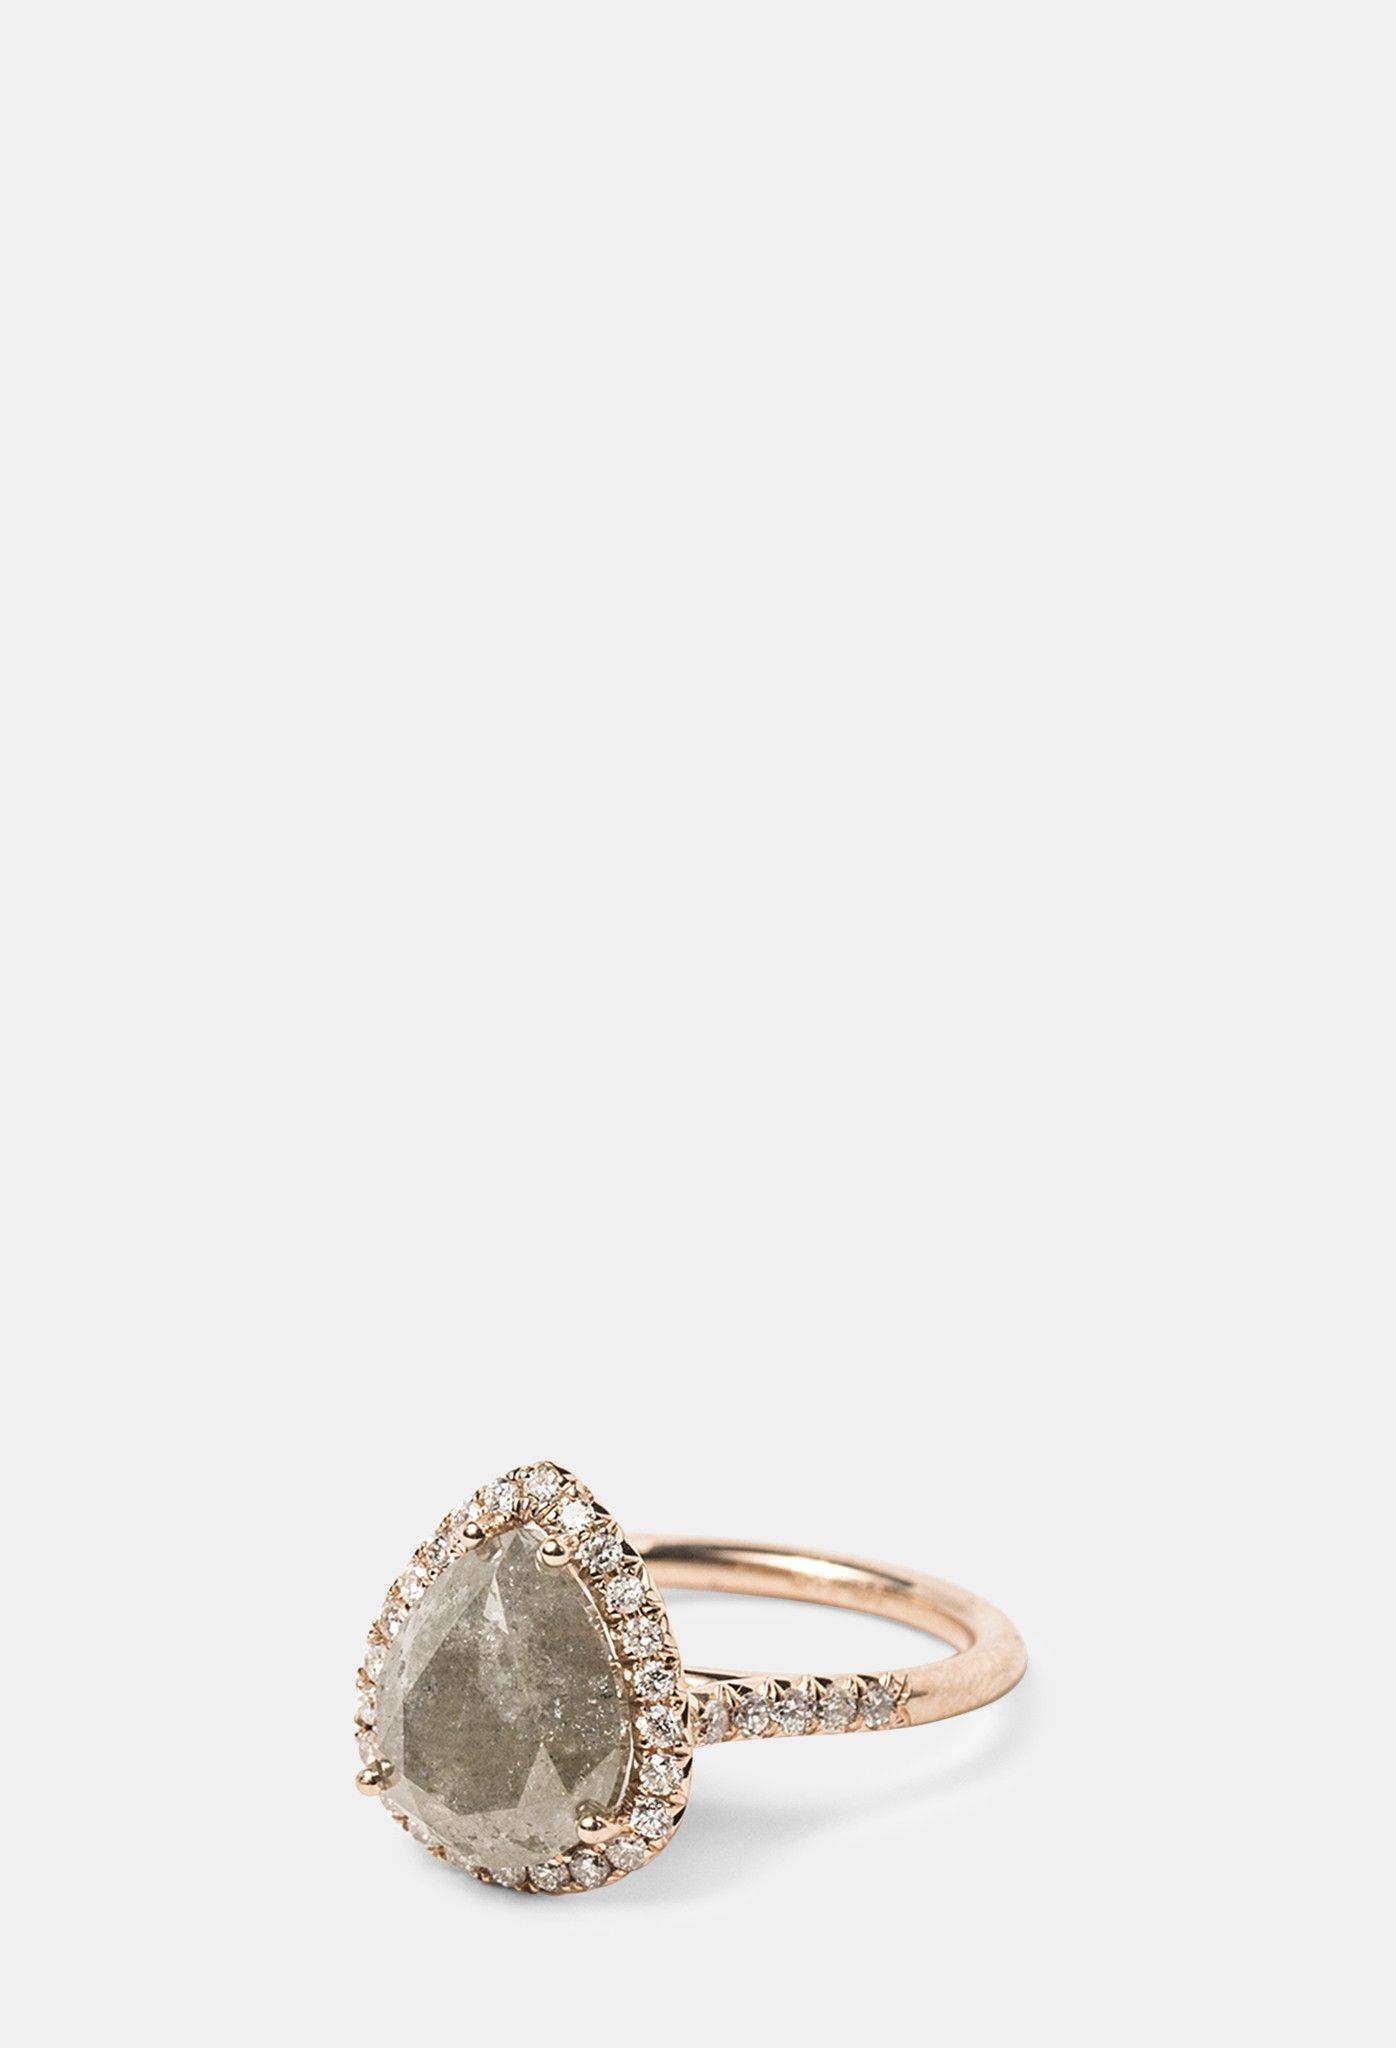 Stone Fox Bride Raw Grey Diamond Engagement Ring Price Upon Request The Deets